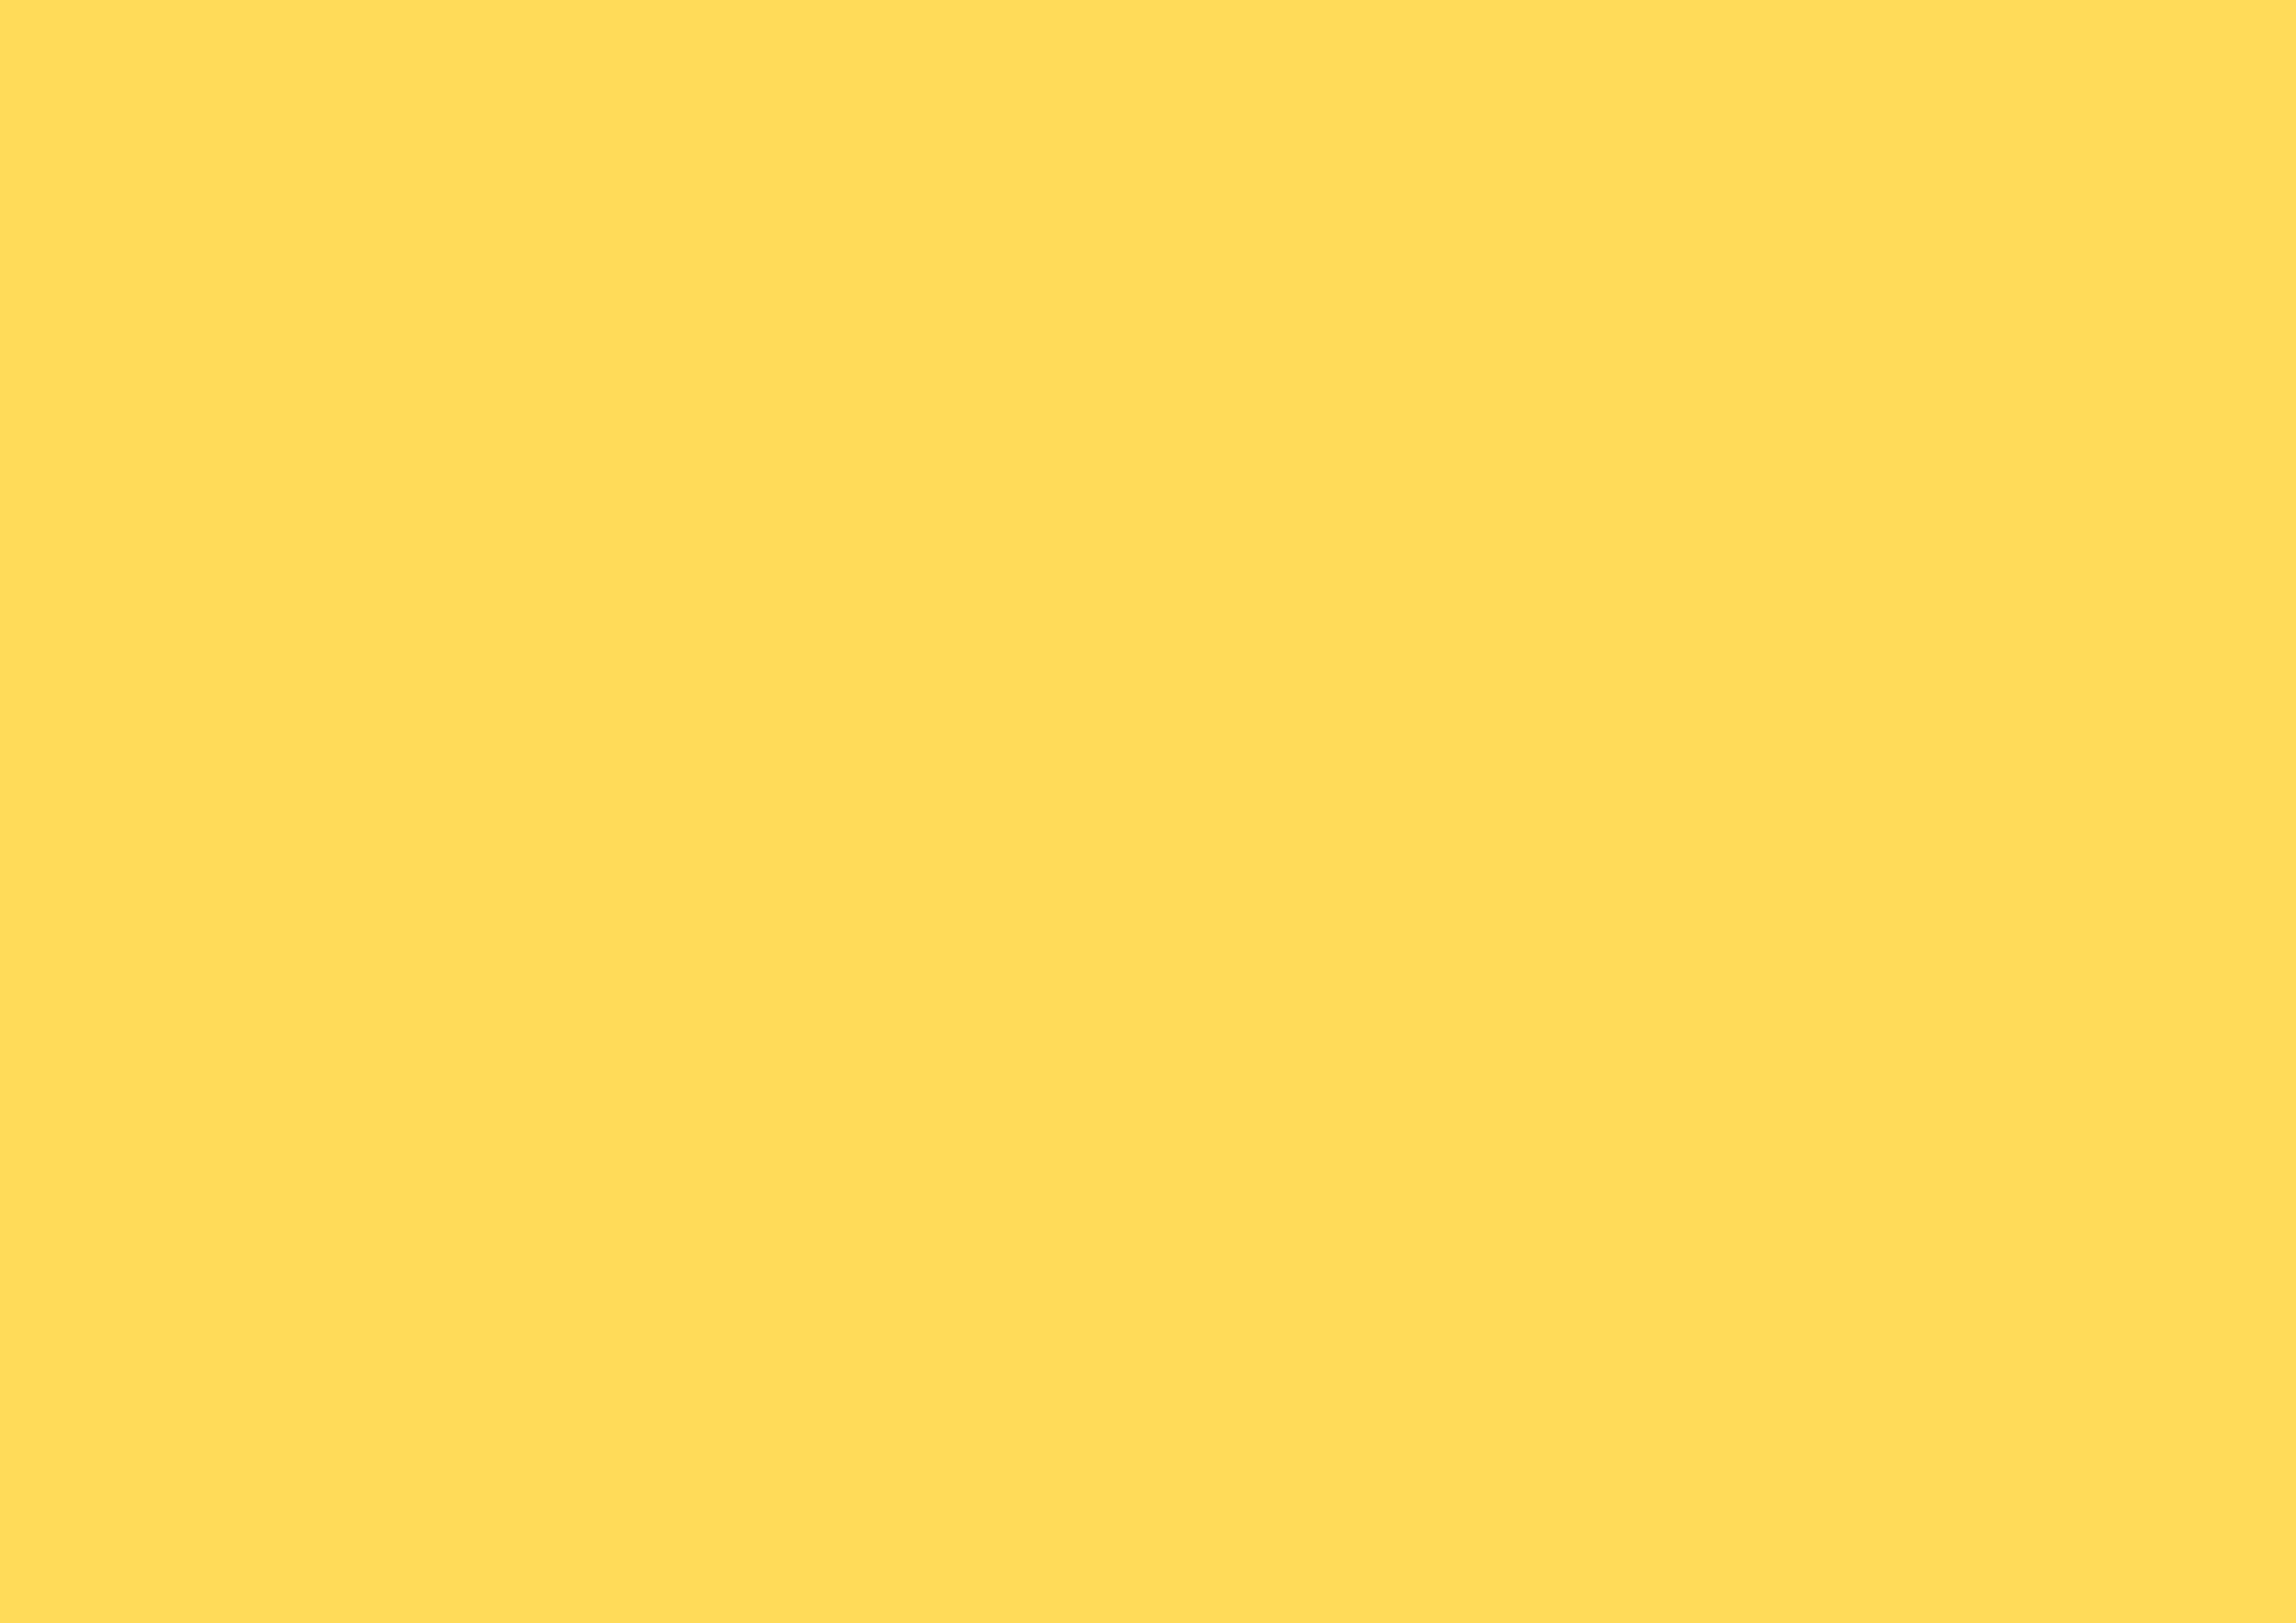 3508x2480 Mustard Solid Color Background